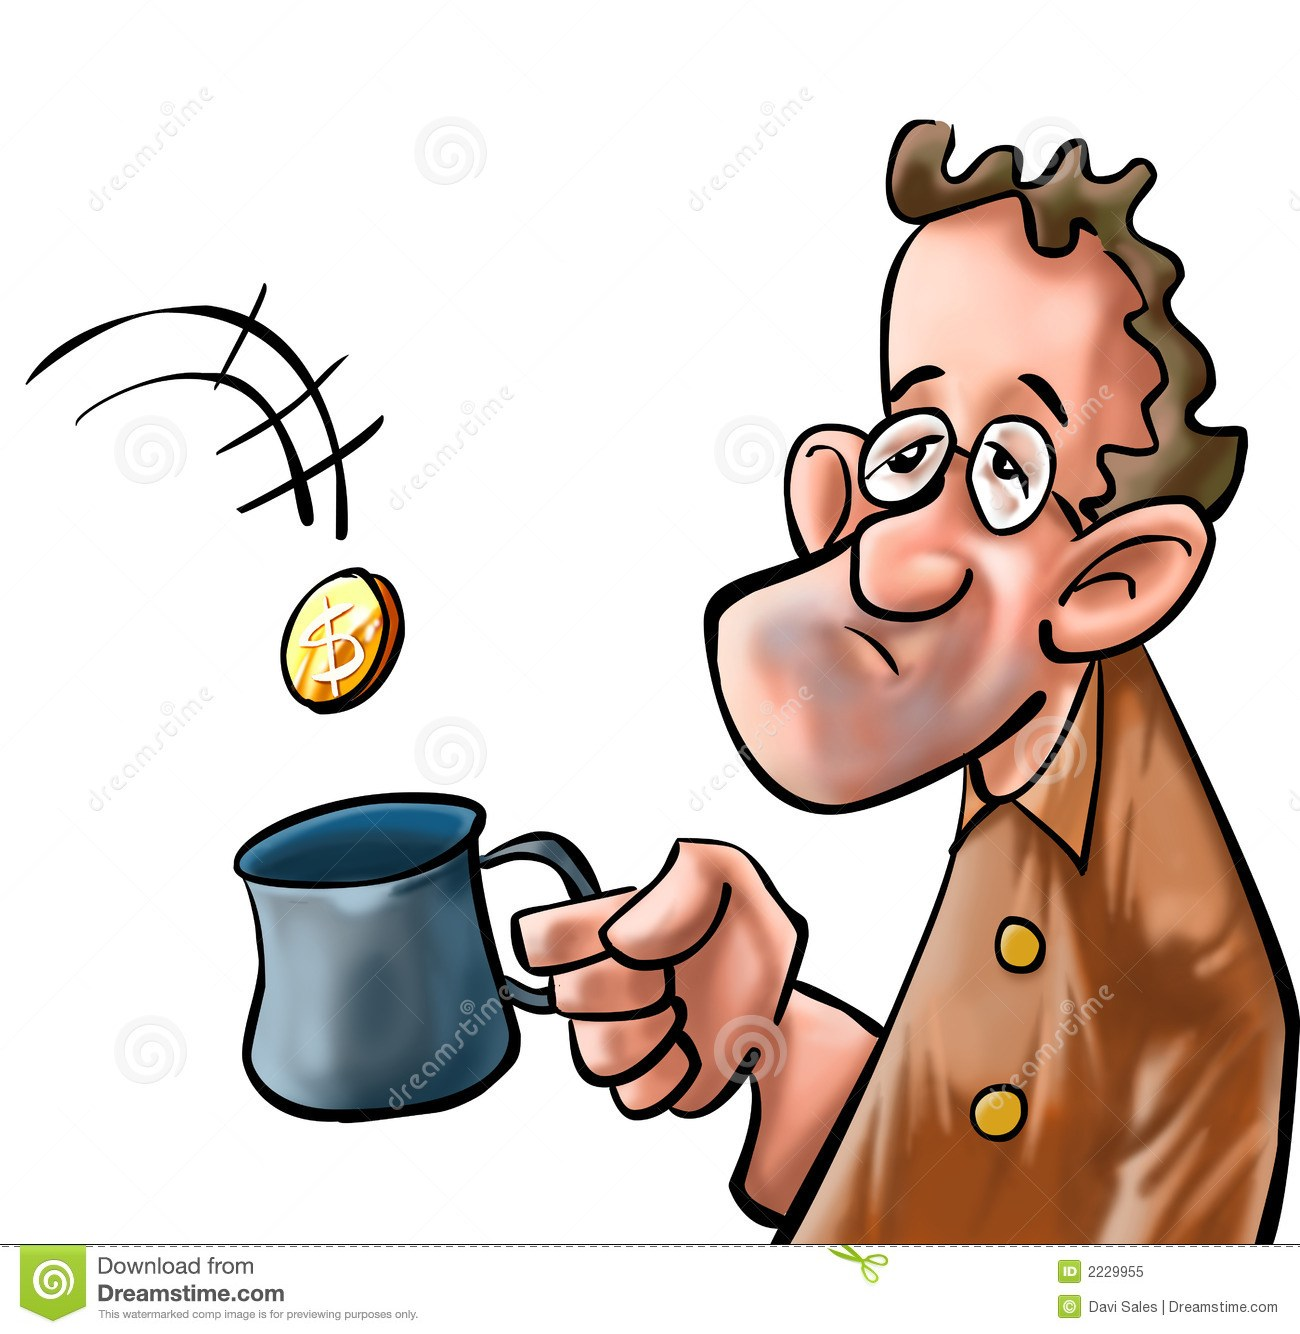 Helping the poor clipart 2 » Clipart Portal.